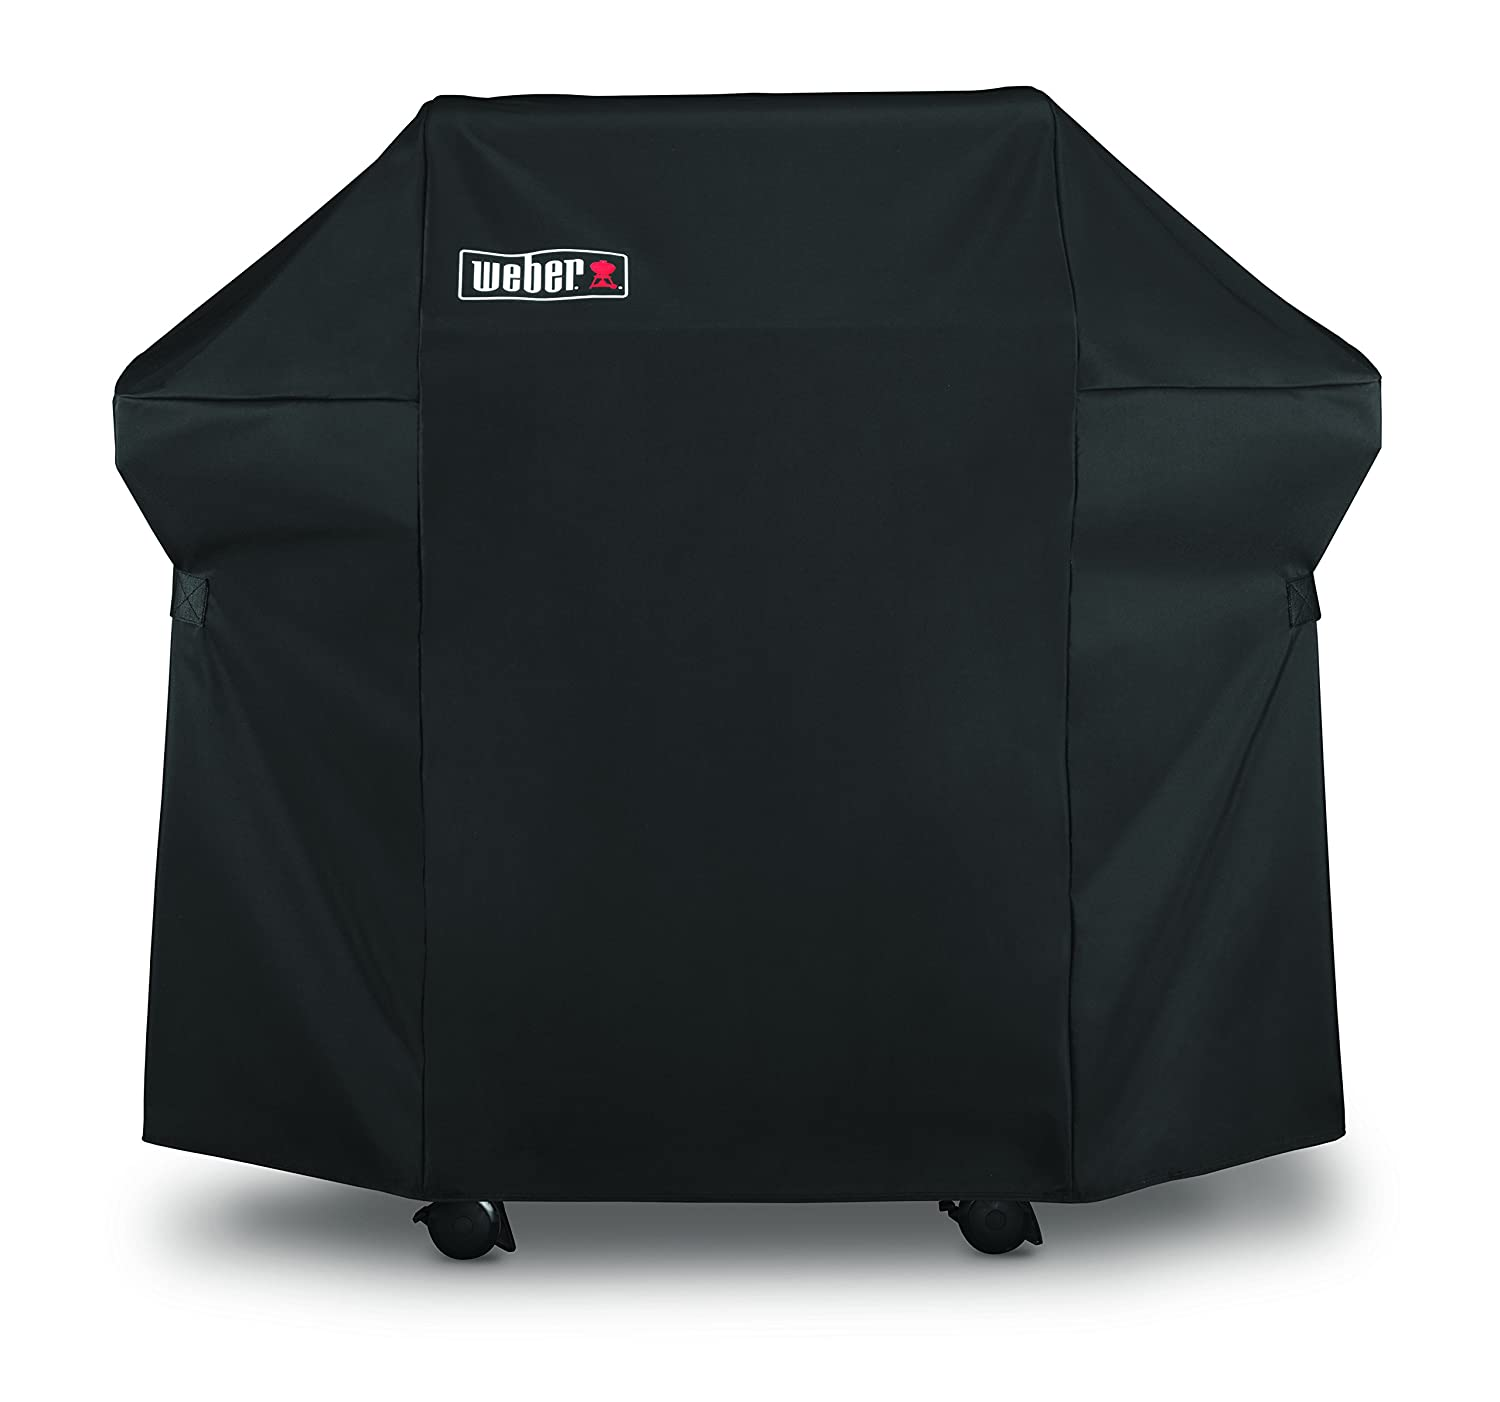 Weber 7106 Grill Cover with Storage Bag for Spirit 220 and 300 Series Gas Grills